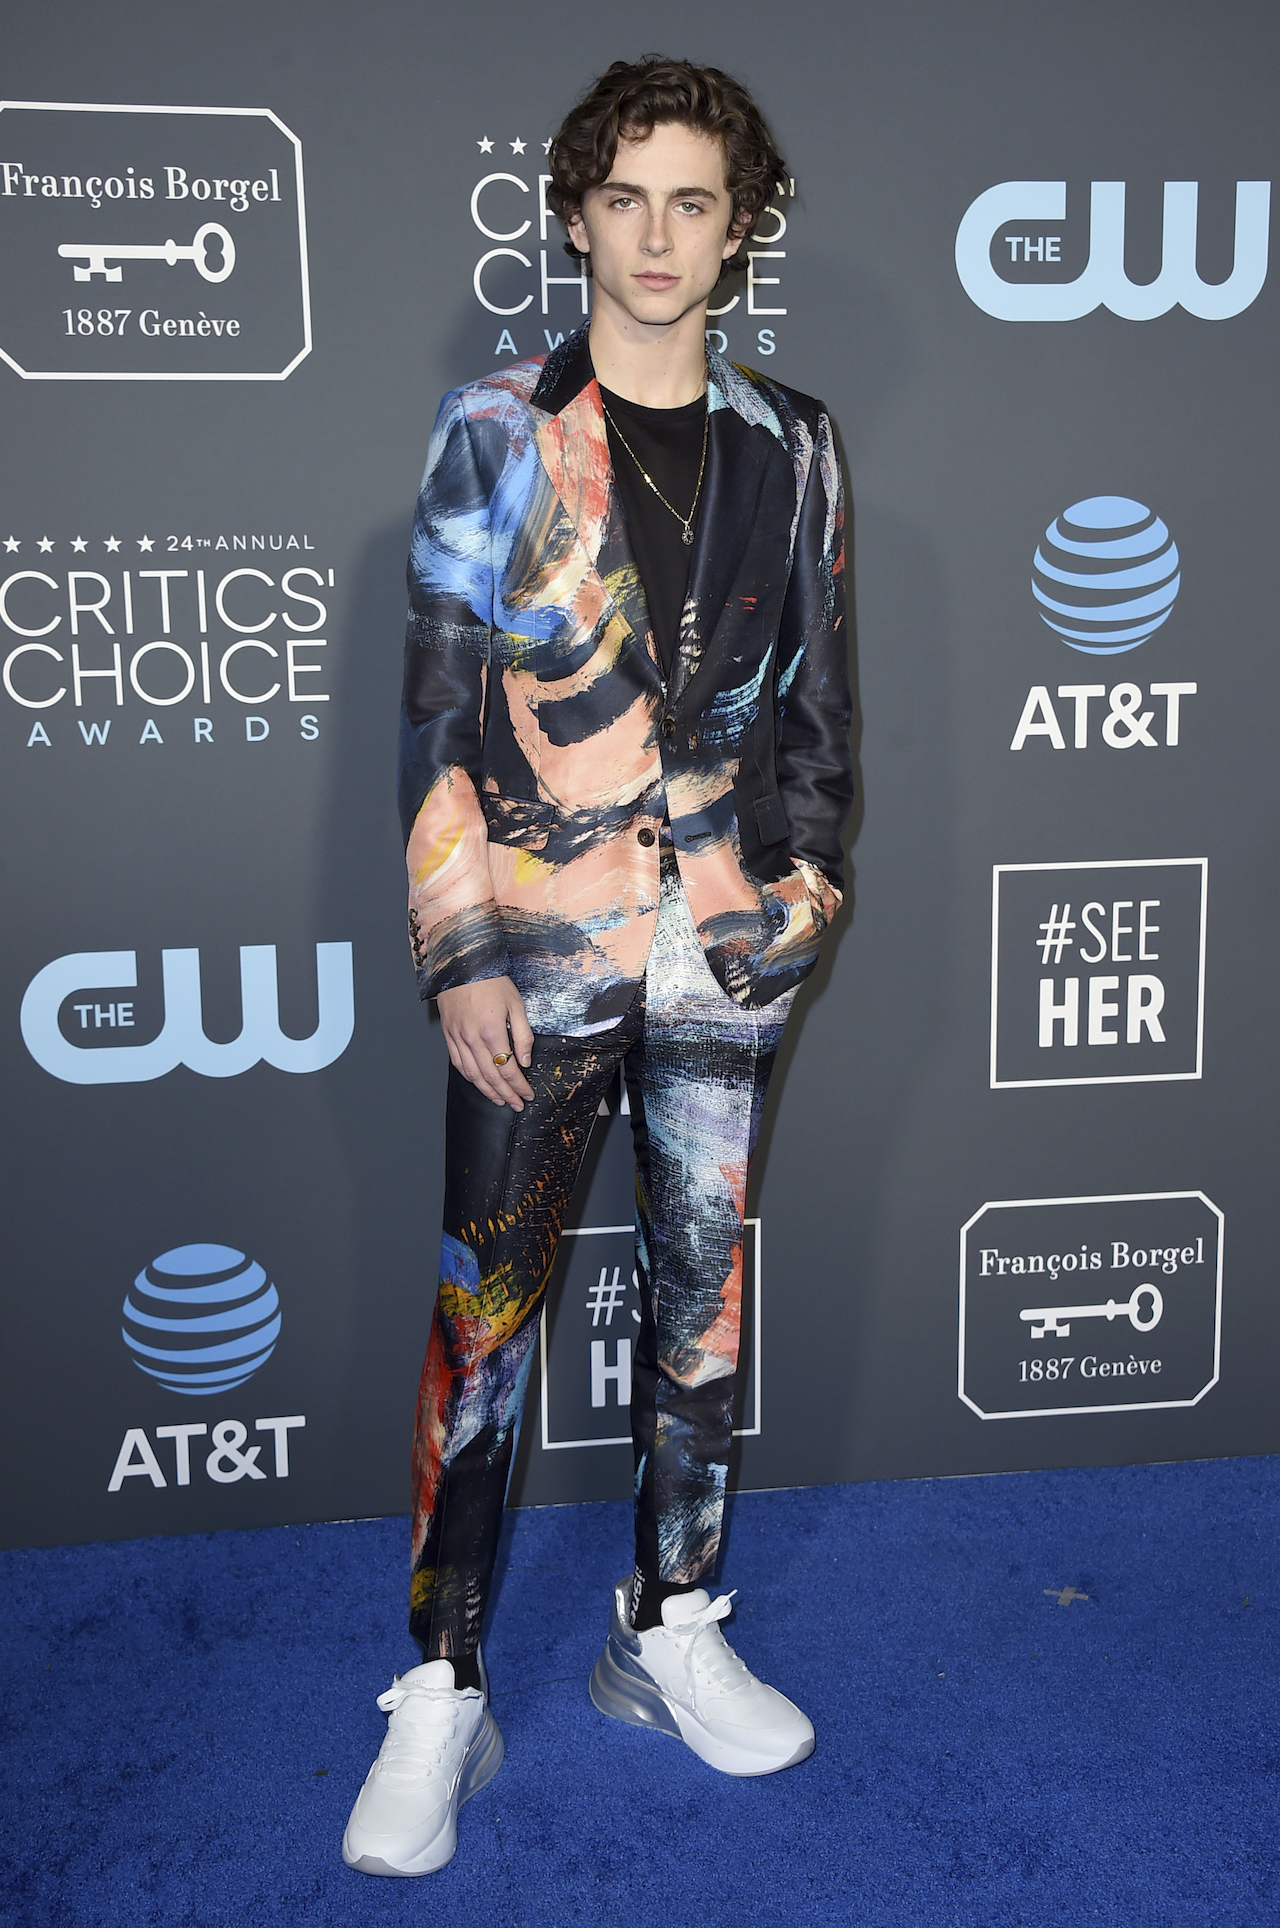 <div class='meta'><div class='origin-logo' data-origin='AP'></div><span class='caption-text' data-credit='Jordan Strauss/Invision/AP'>Timothee Chalamet arrives at the 24th annual Critics' Choice Awards on Sunday, Jan. 13, 2019, at the Barker Hangar in Santa Monica, Calif.</span></div>